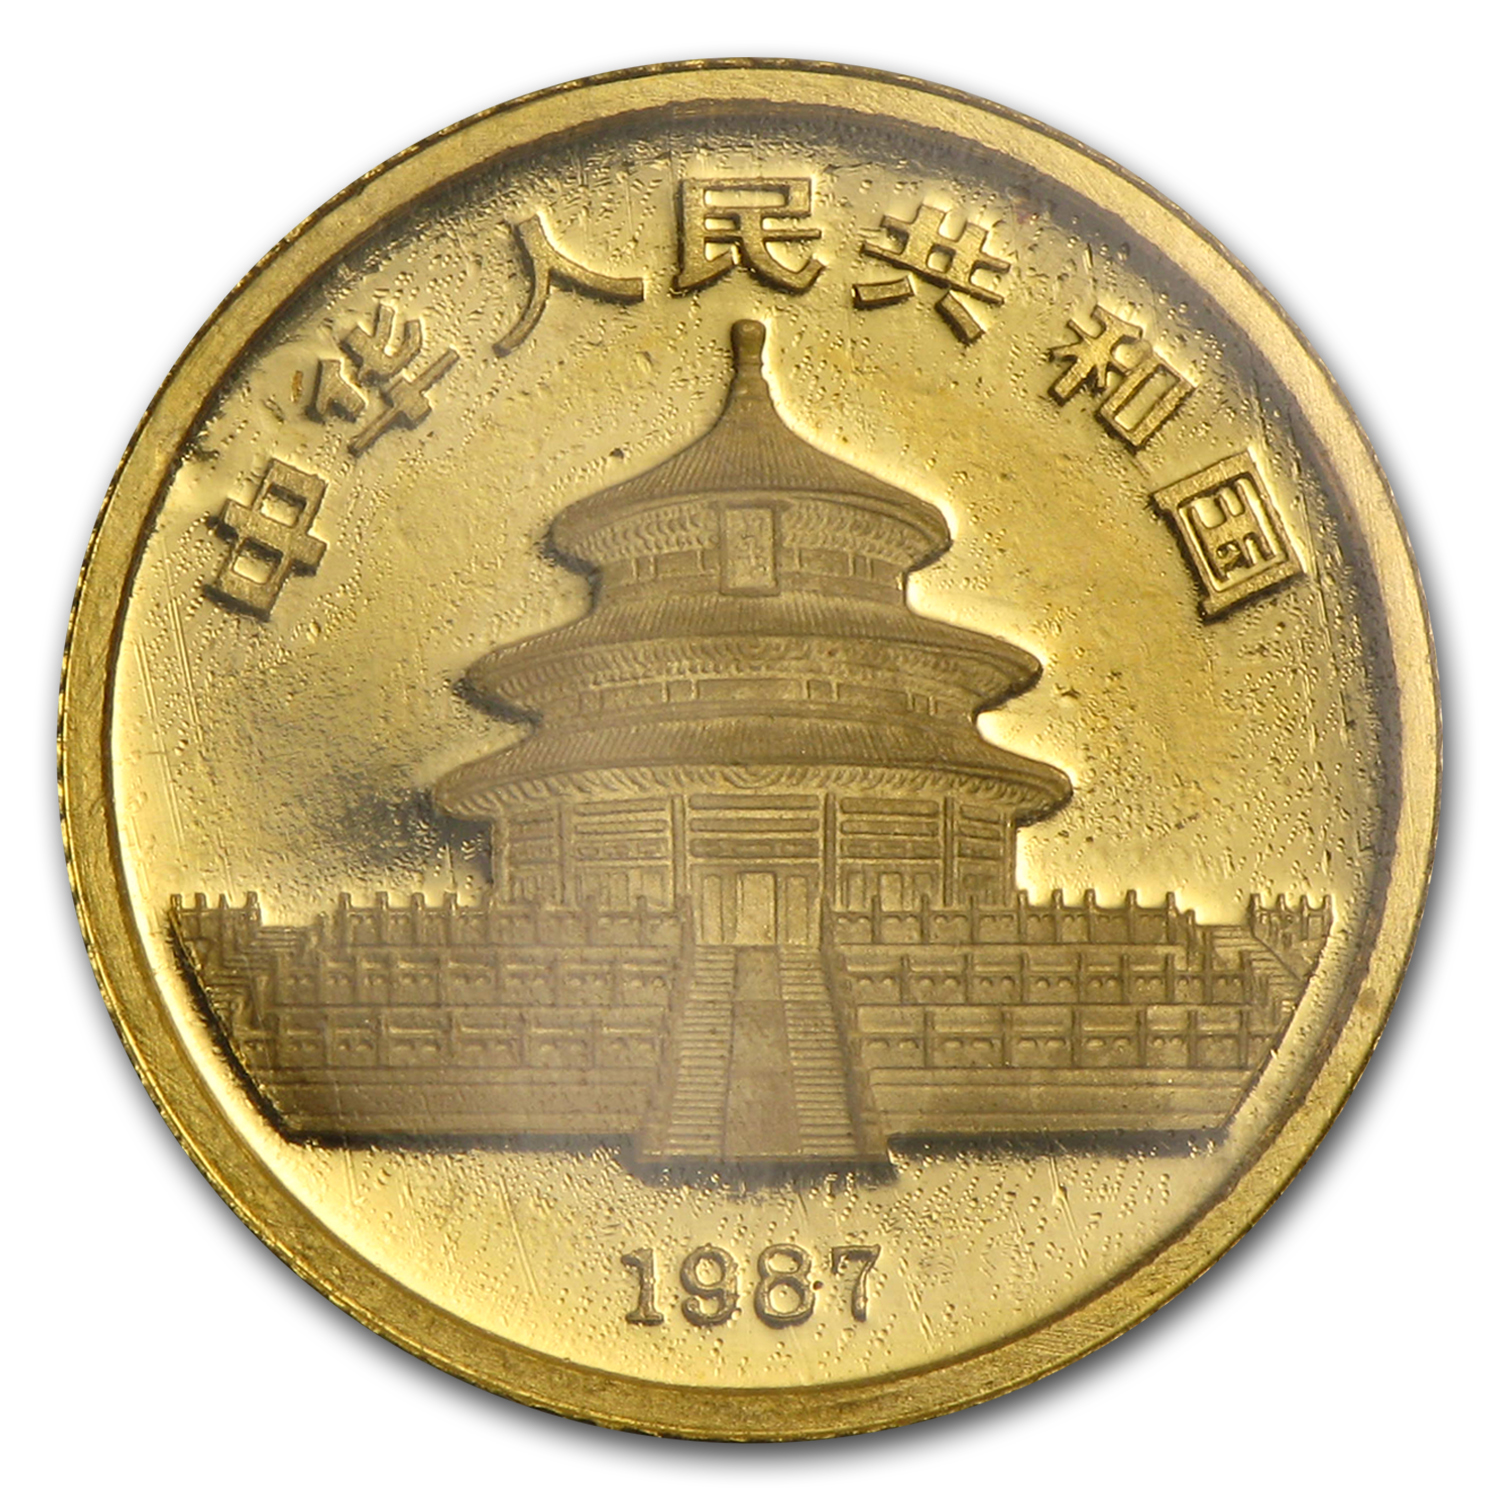 1987-Y China 1/10 oz Gold Panda BU (Sealed)